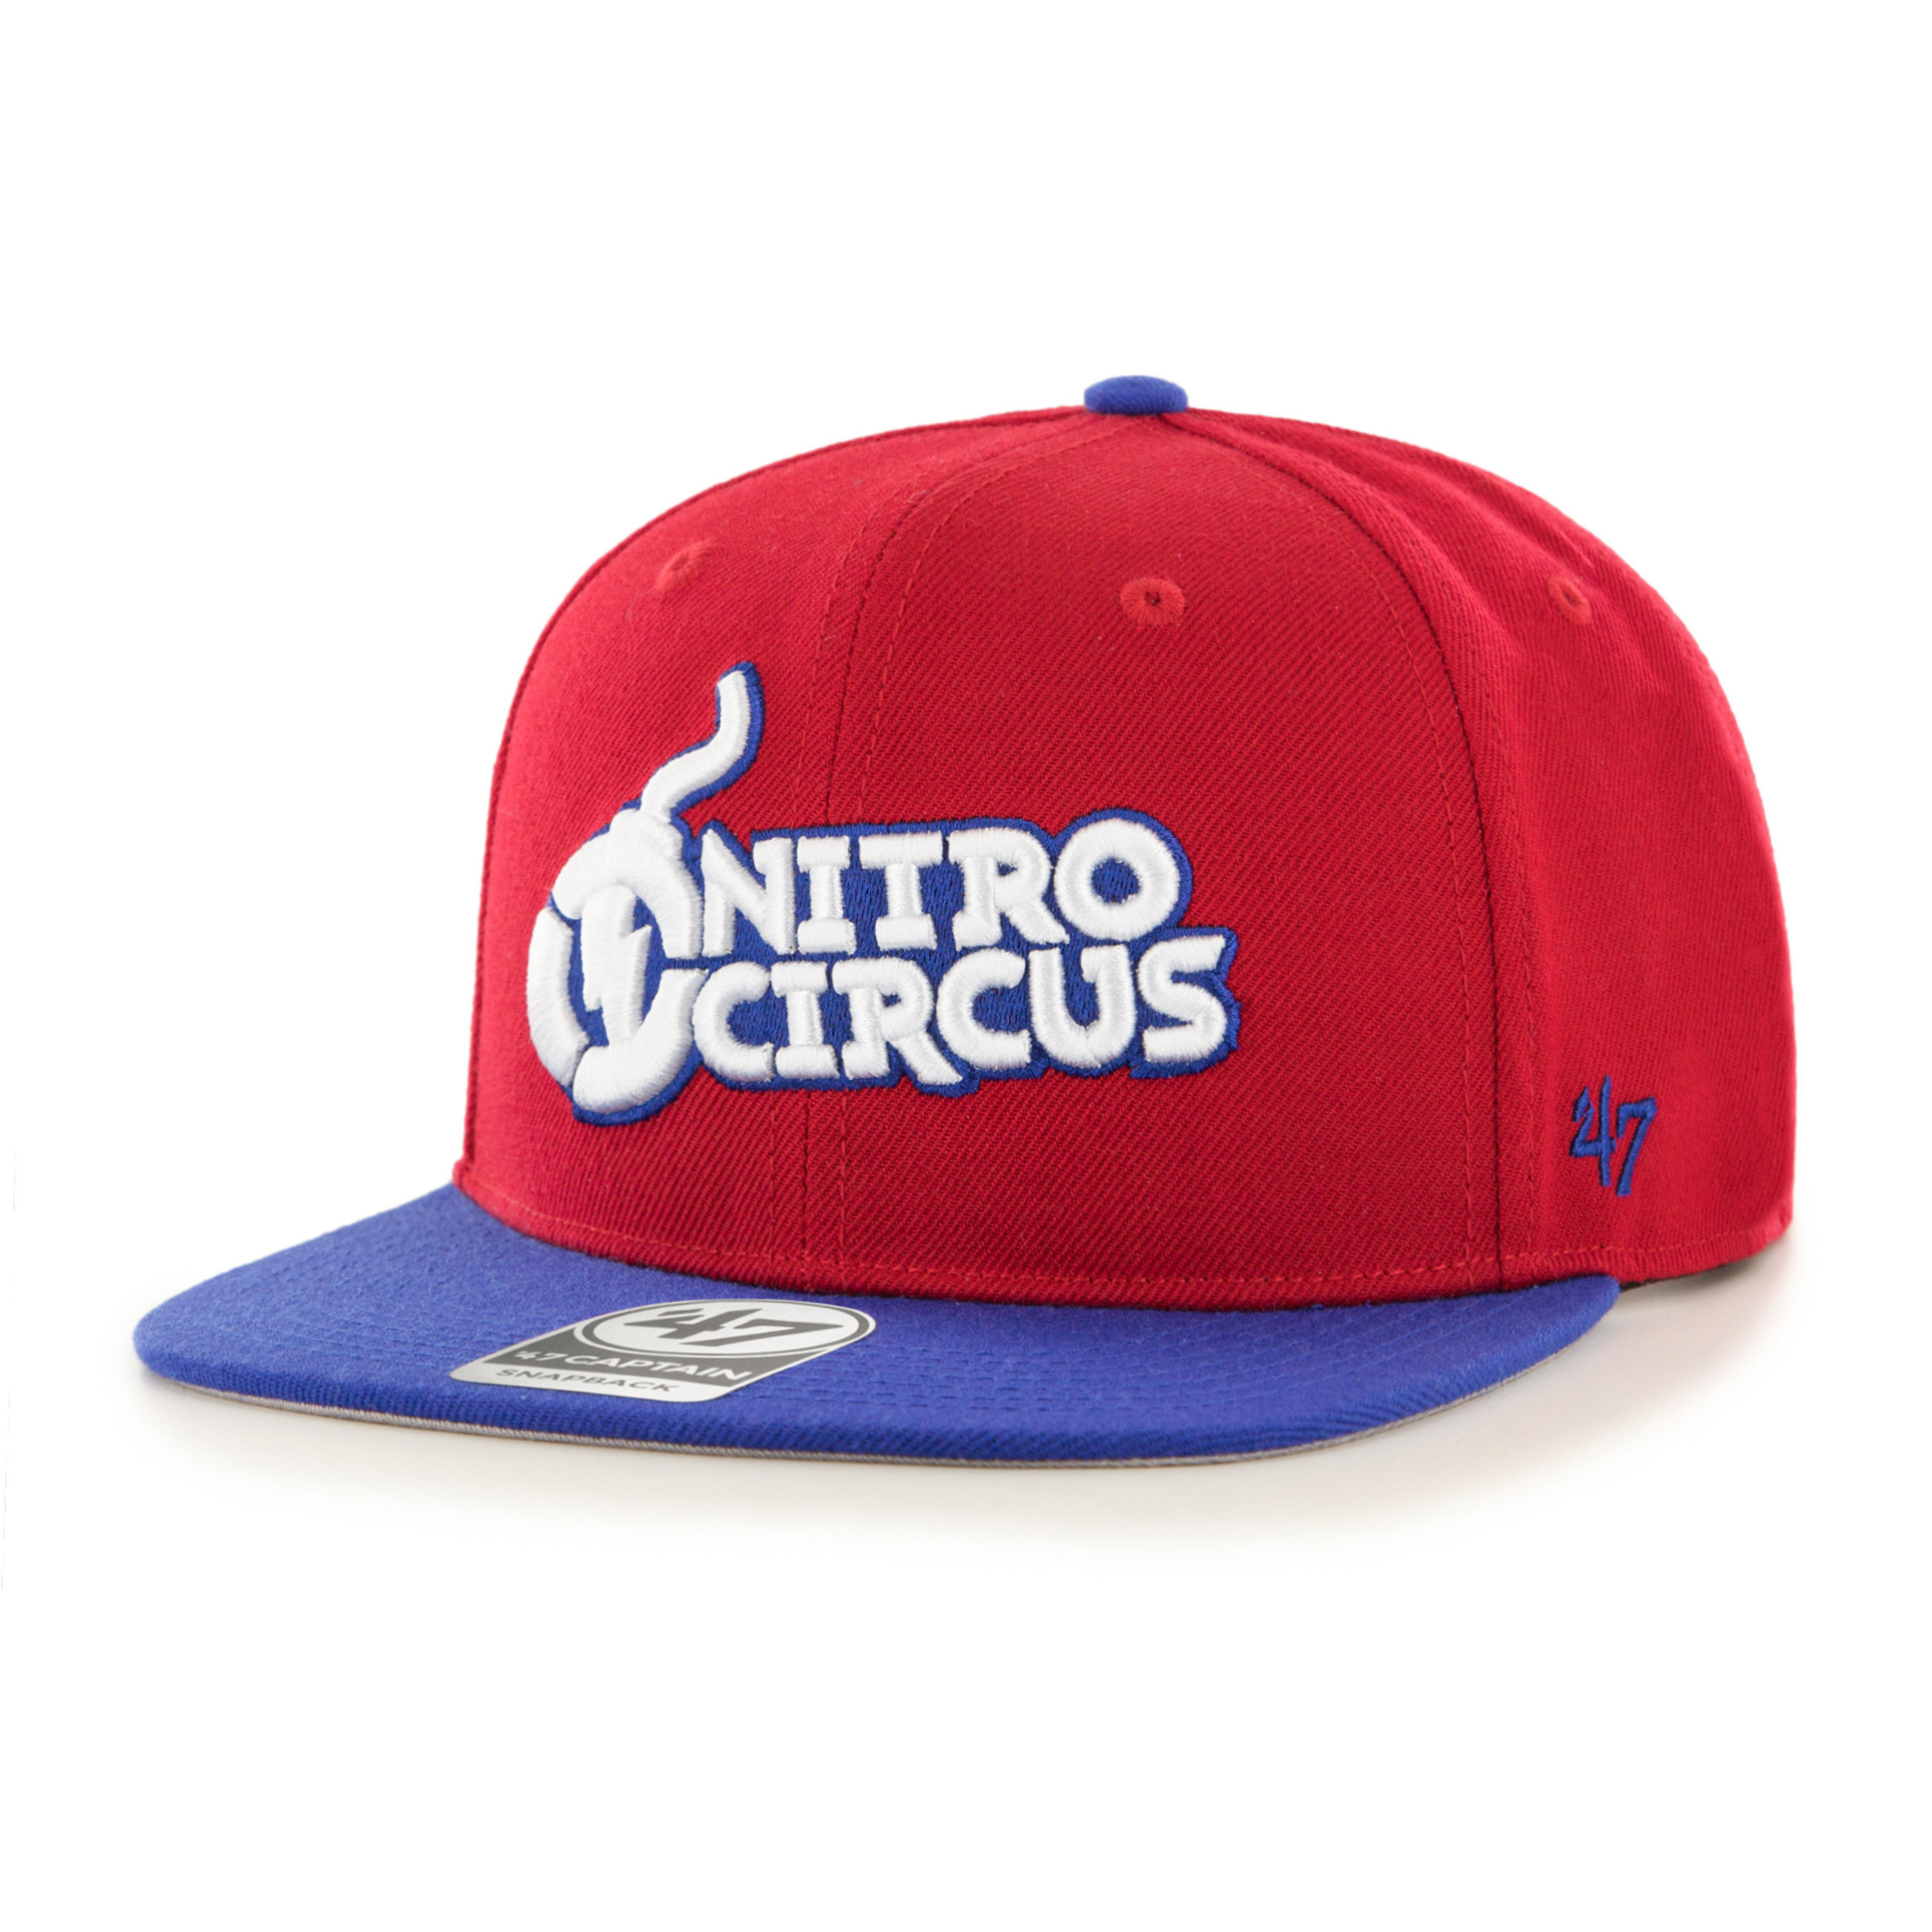 Nitro Circus headwear produced by iconic sports lifestyle brand, '47